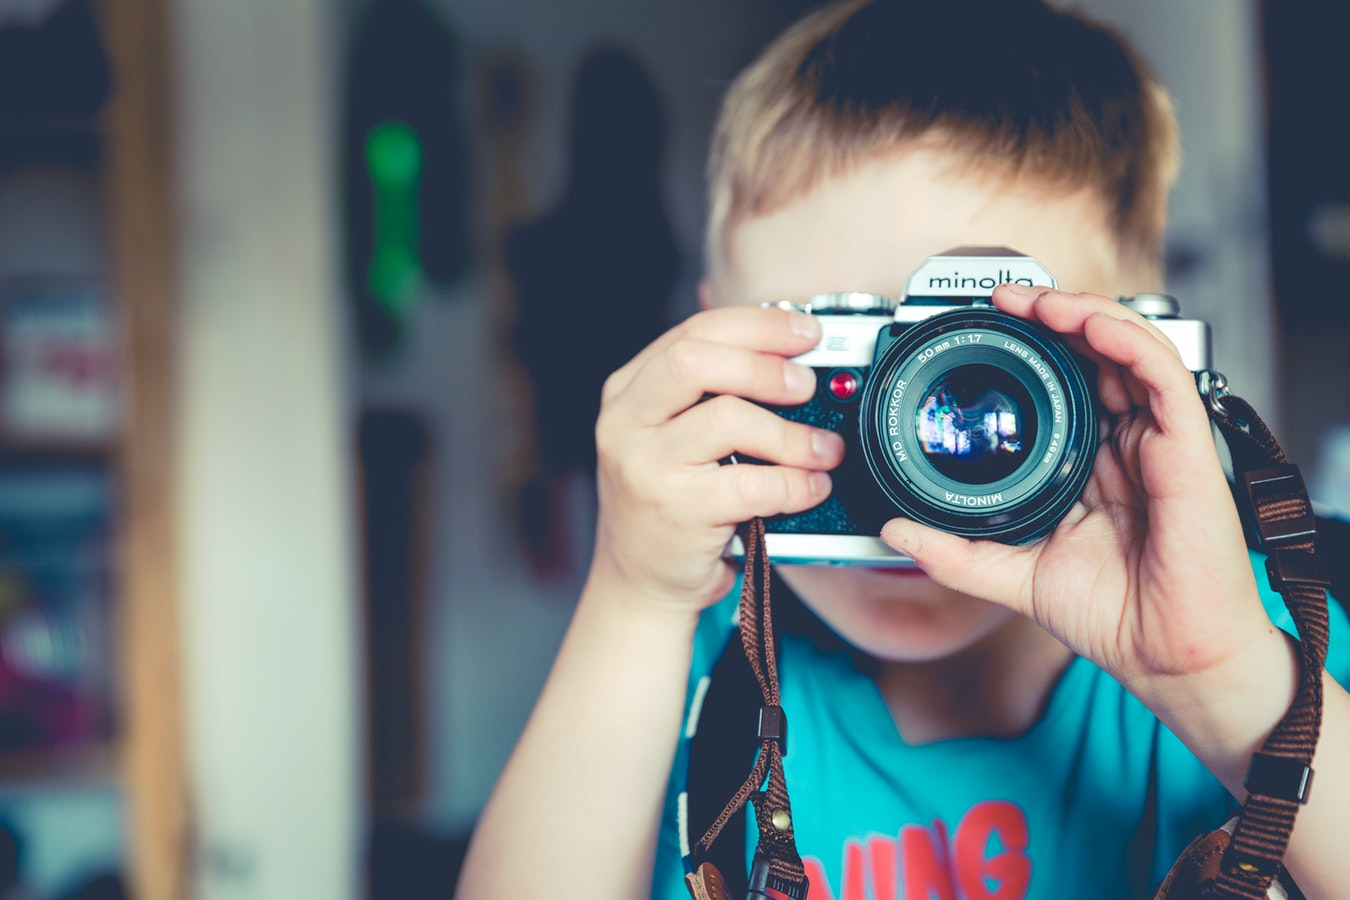 Brand Image is Everything, Don't Settle For Amateur Photography